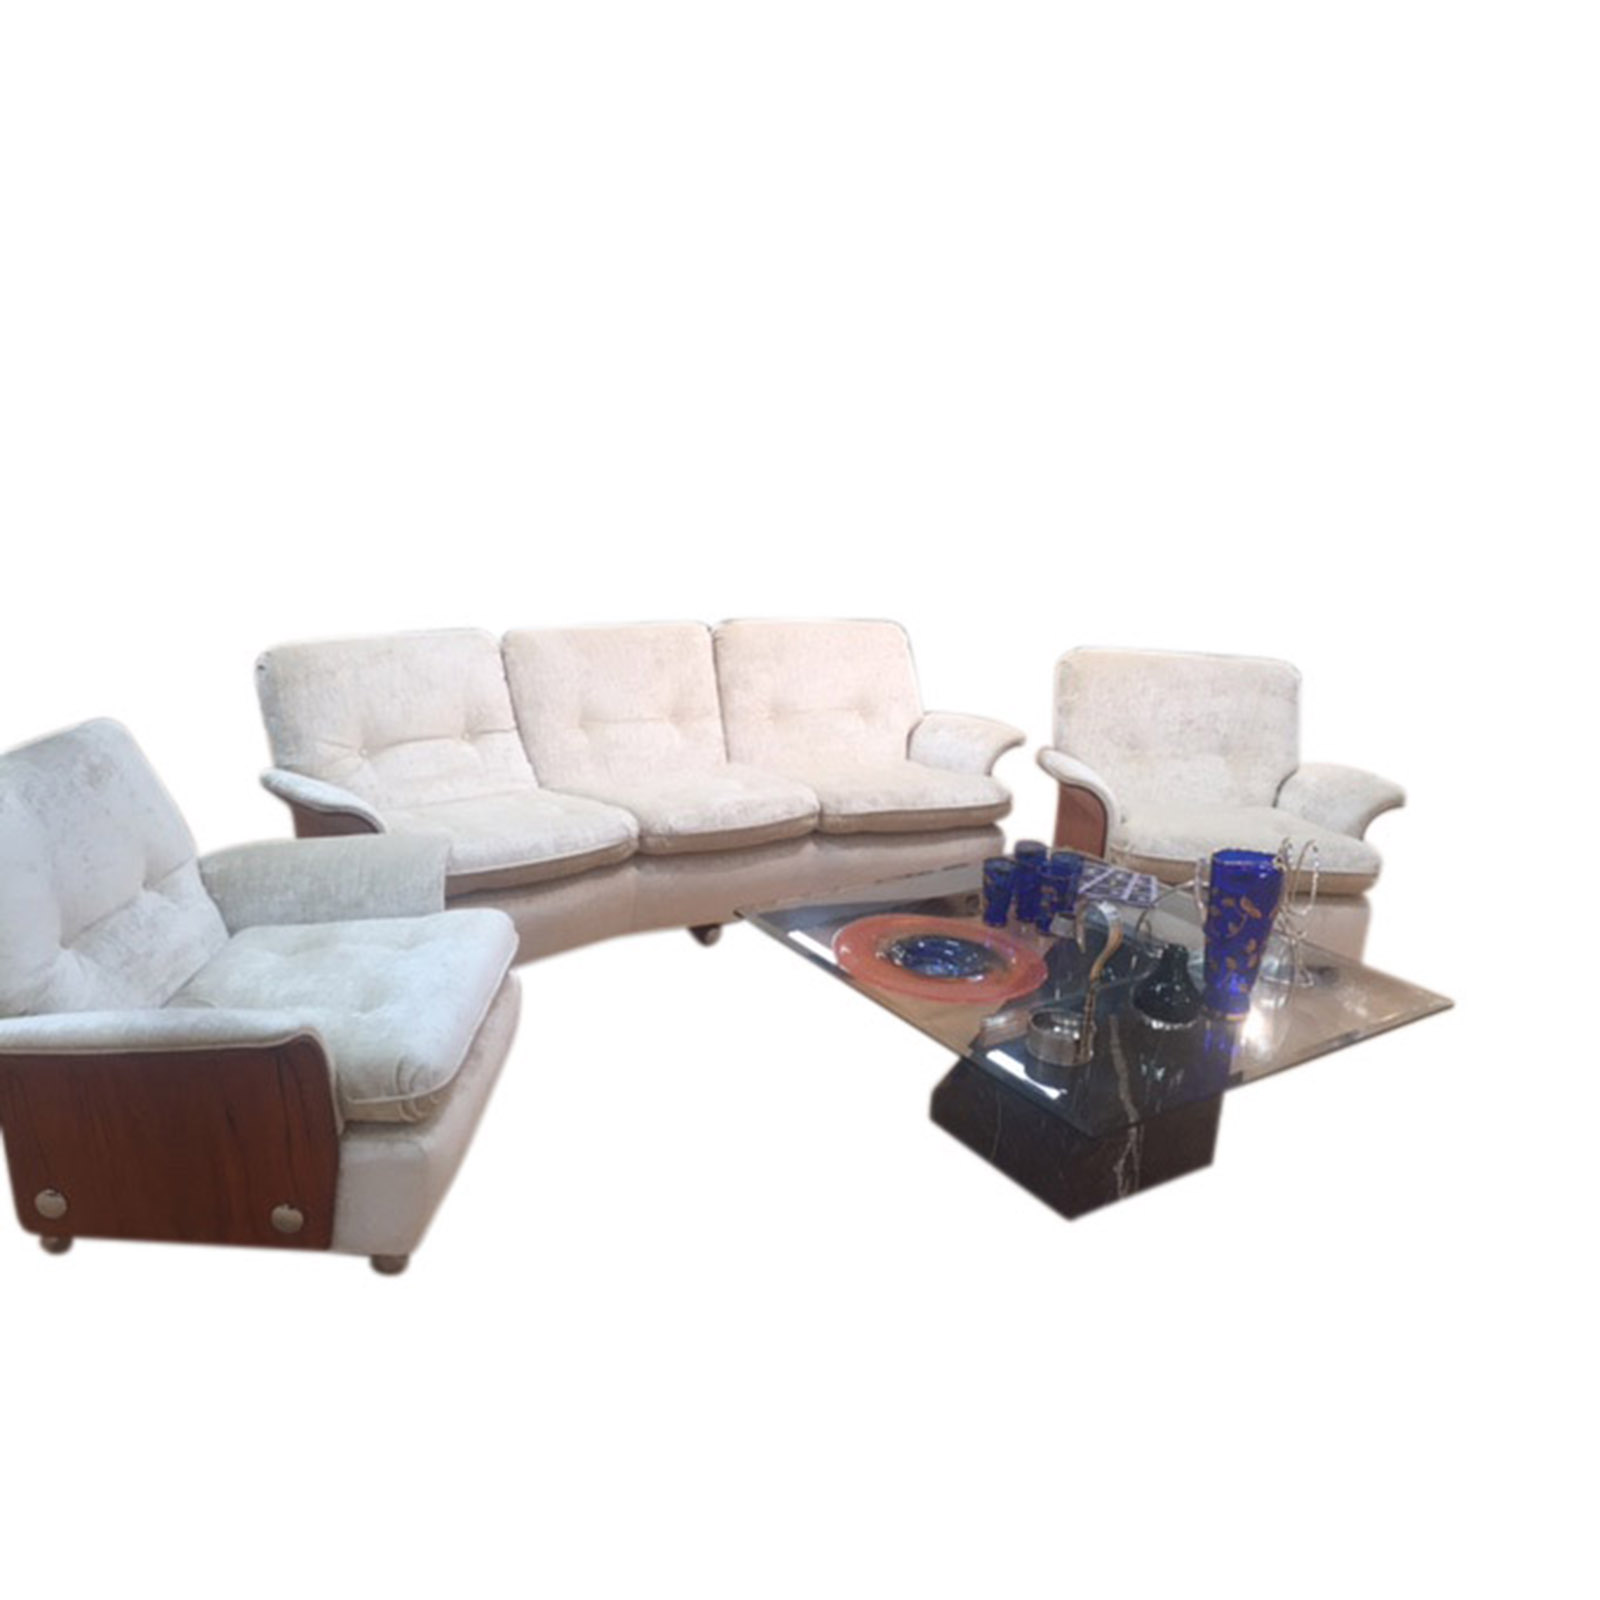 Very Cool Vintage Three Piece Lounge Suite